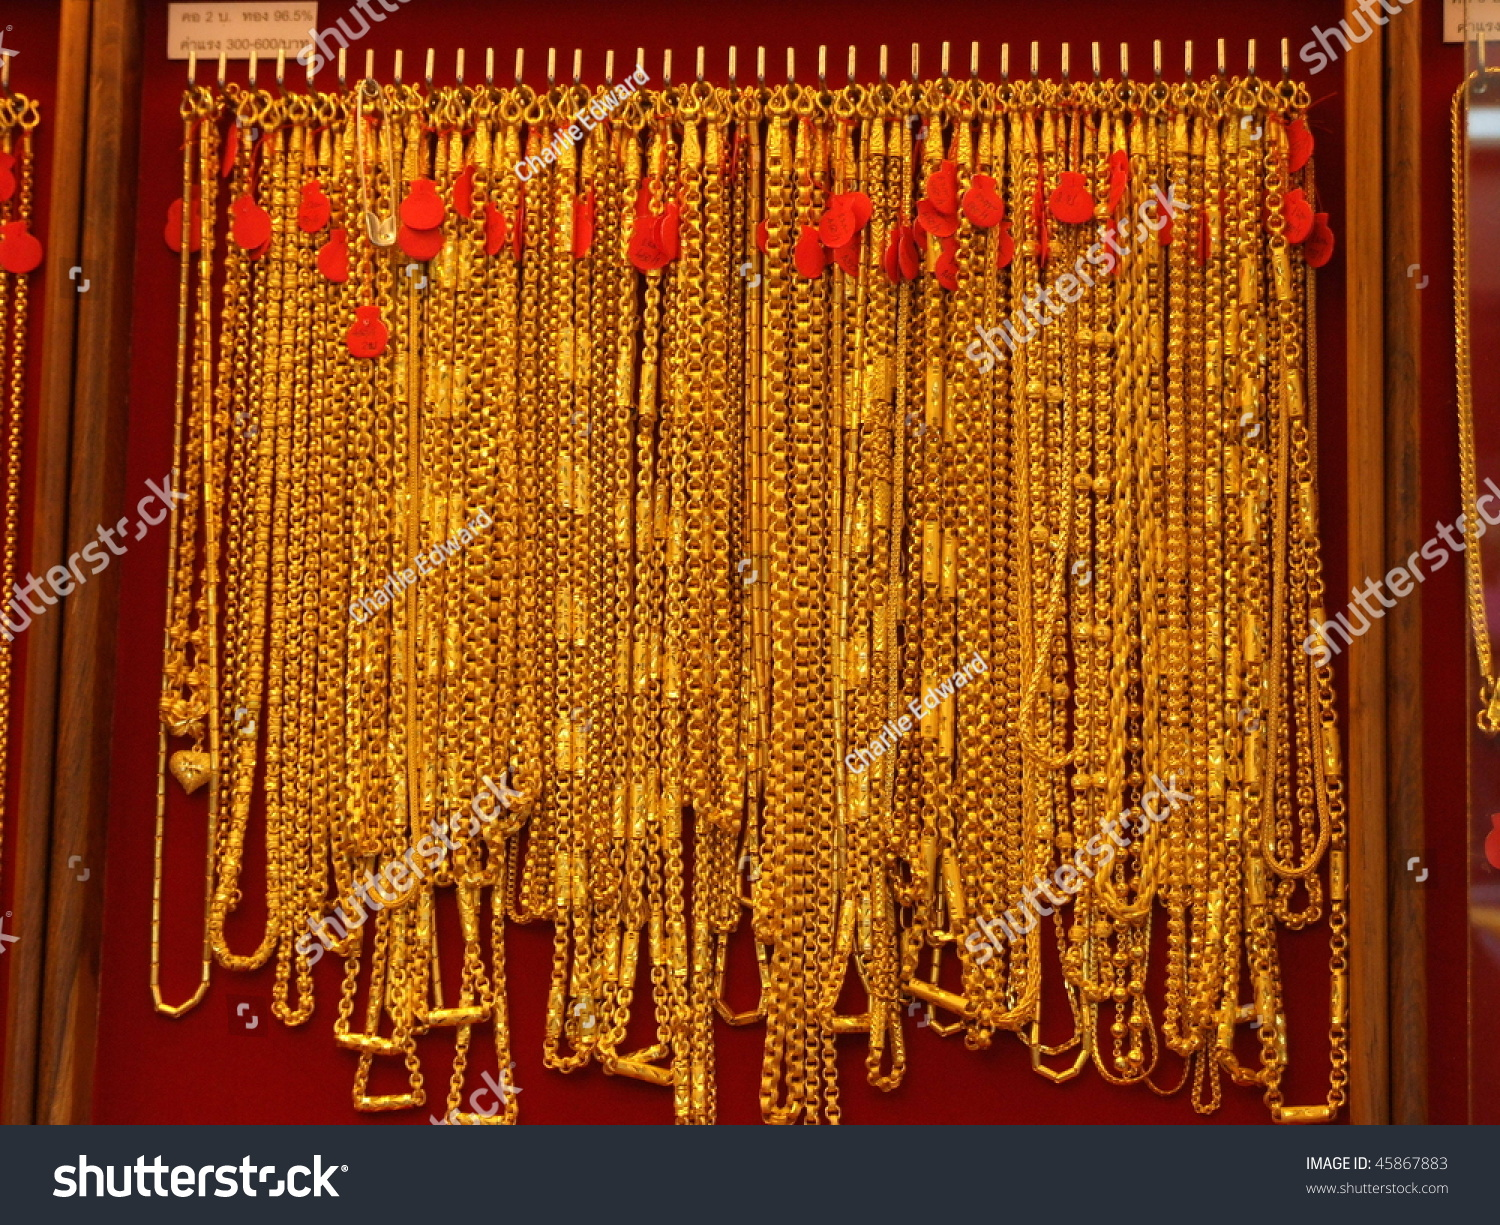 Gold Necklaces Bangkok Thailand Stock Photo Download Now 45867883